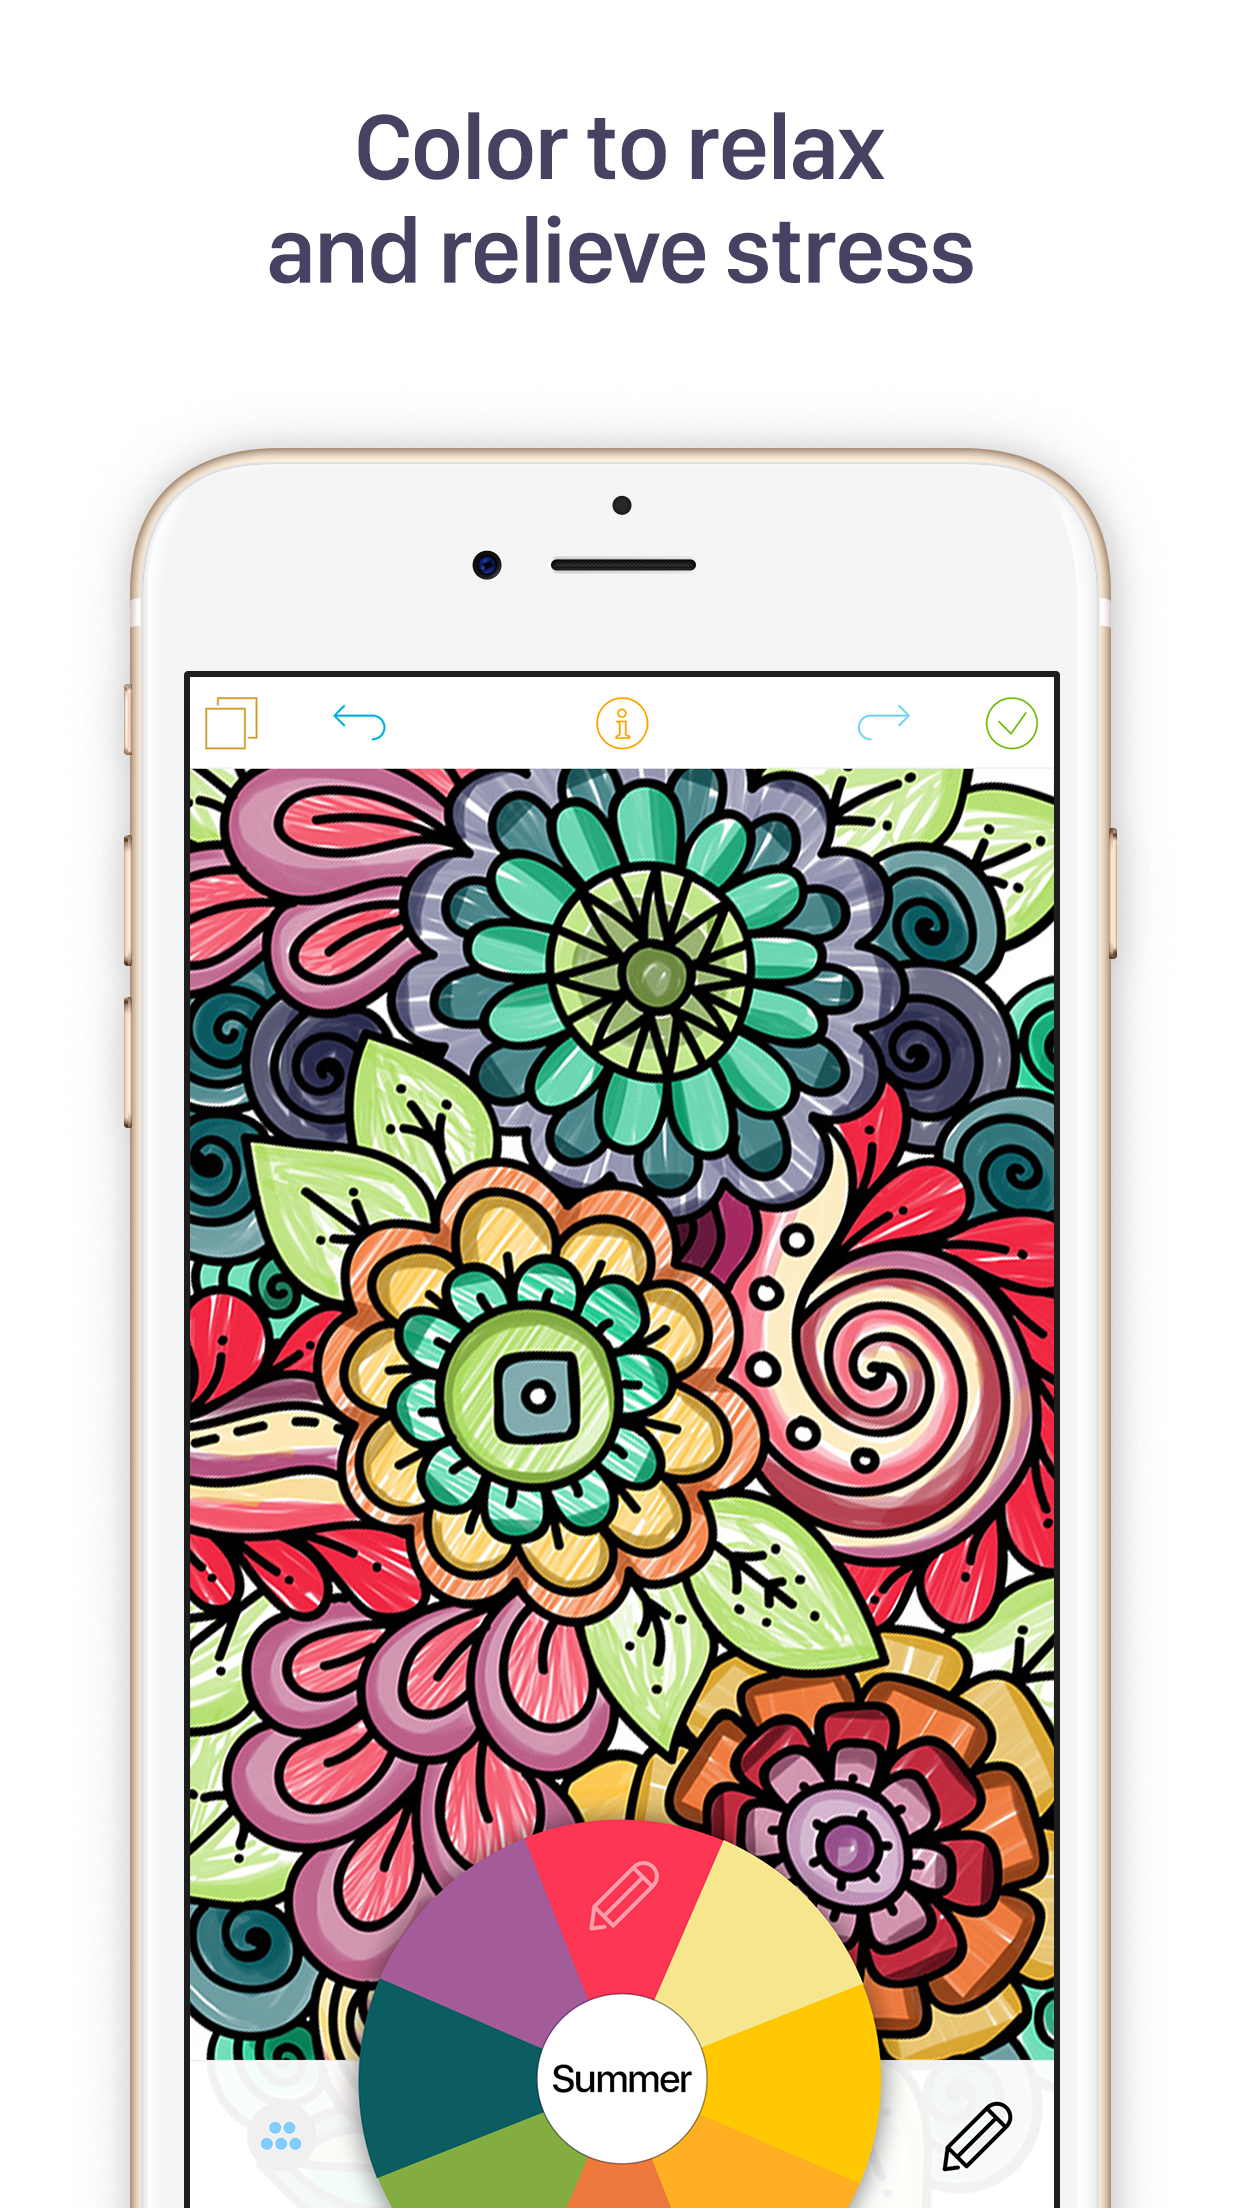 Coloring Book For Adults Mobile Screen Shot Image